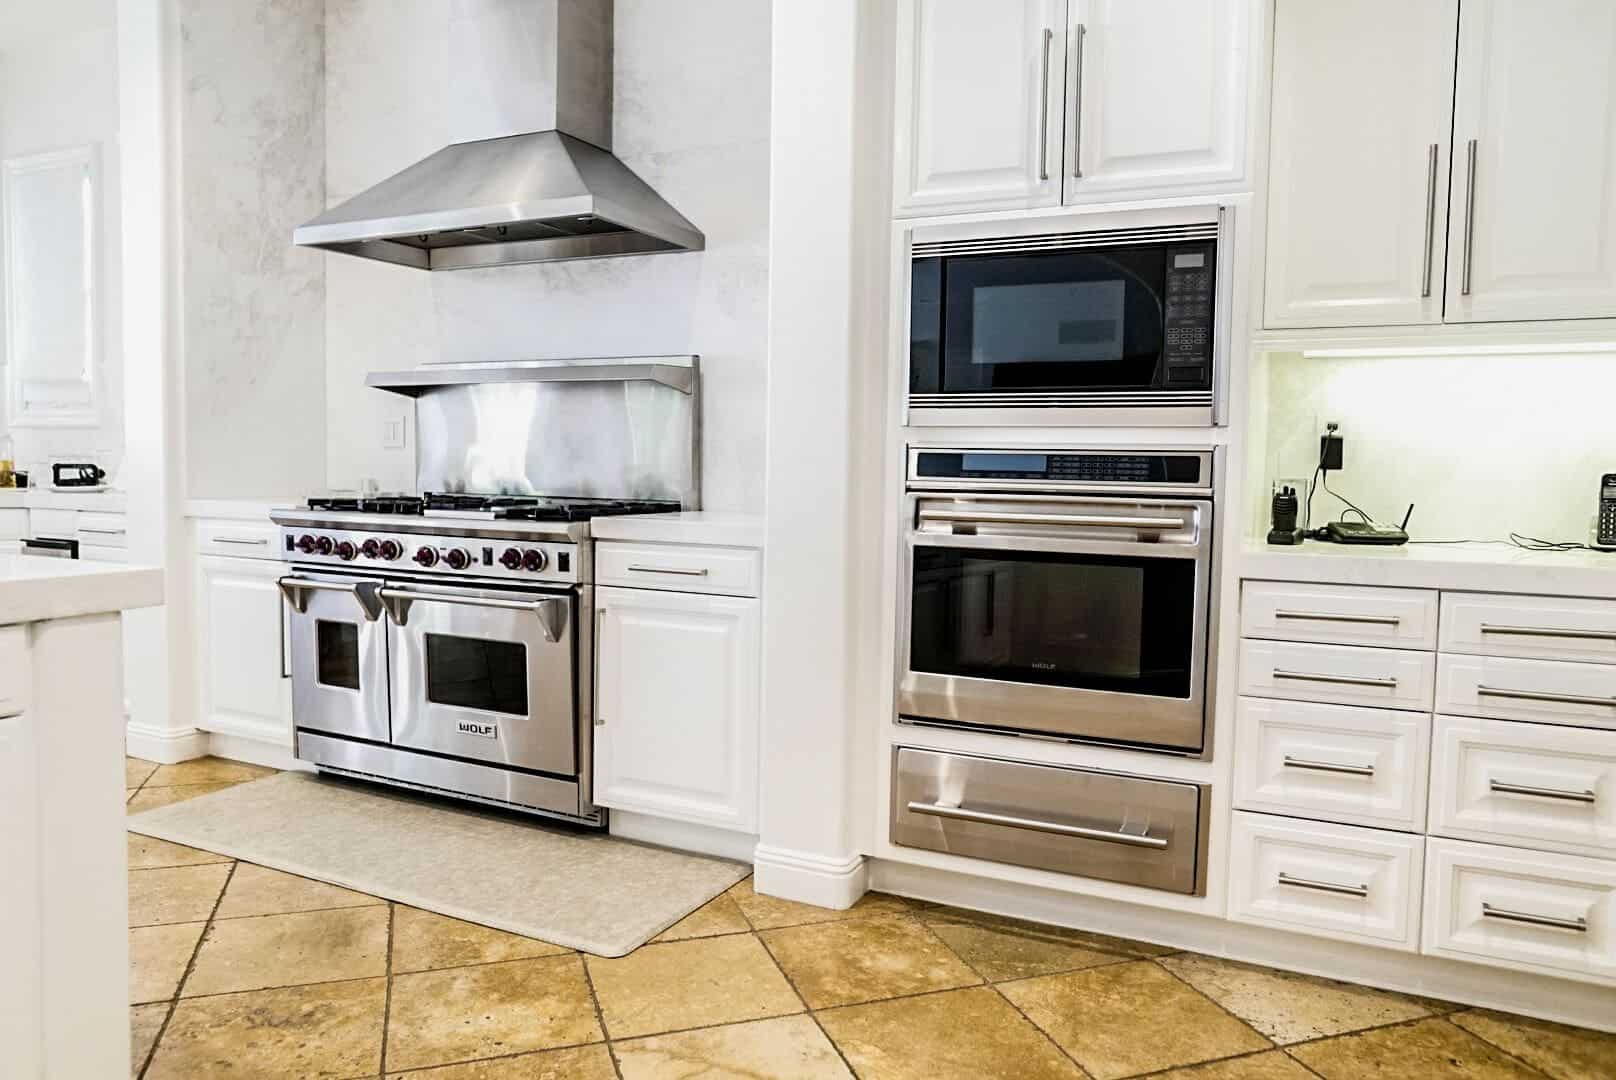 A closer look at the kitchen's high-end appliances, featuring a stainless steel stove and oven. Images courtesy of Toptenrealestatedeals.com.